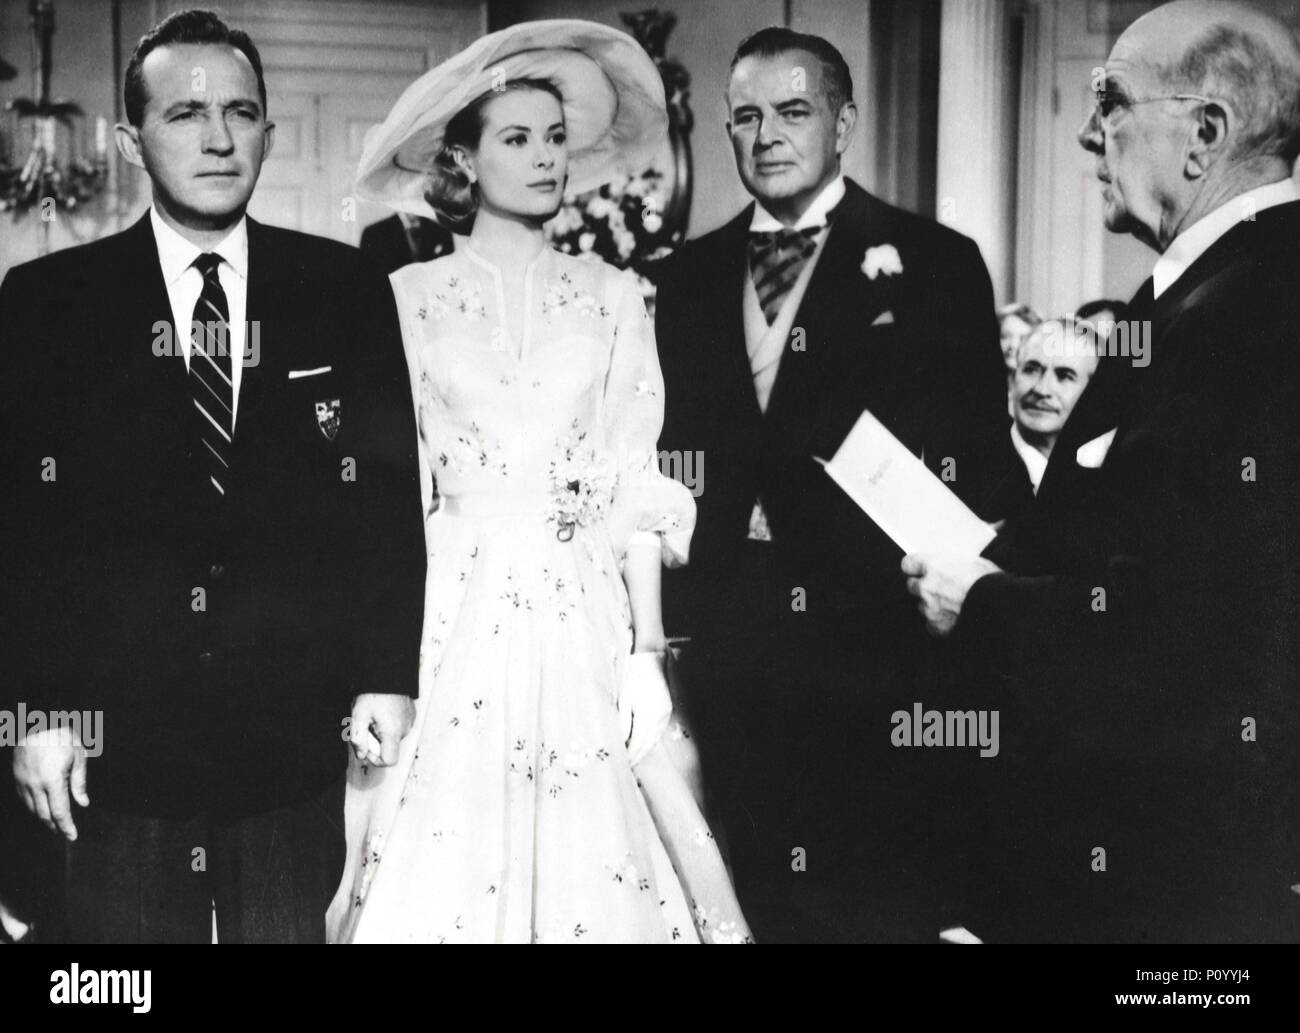 Original Film Title: HIGH SOCIETY.  English Title: HIGH SOCIETY.  Film Director: CHARLES WALTERS.  Year: 1956.  Stars: GRACE KELLY; BING CROSBY; SIDNEY BLACKMER. Credit: M.G.M. / Album - Stock Image